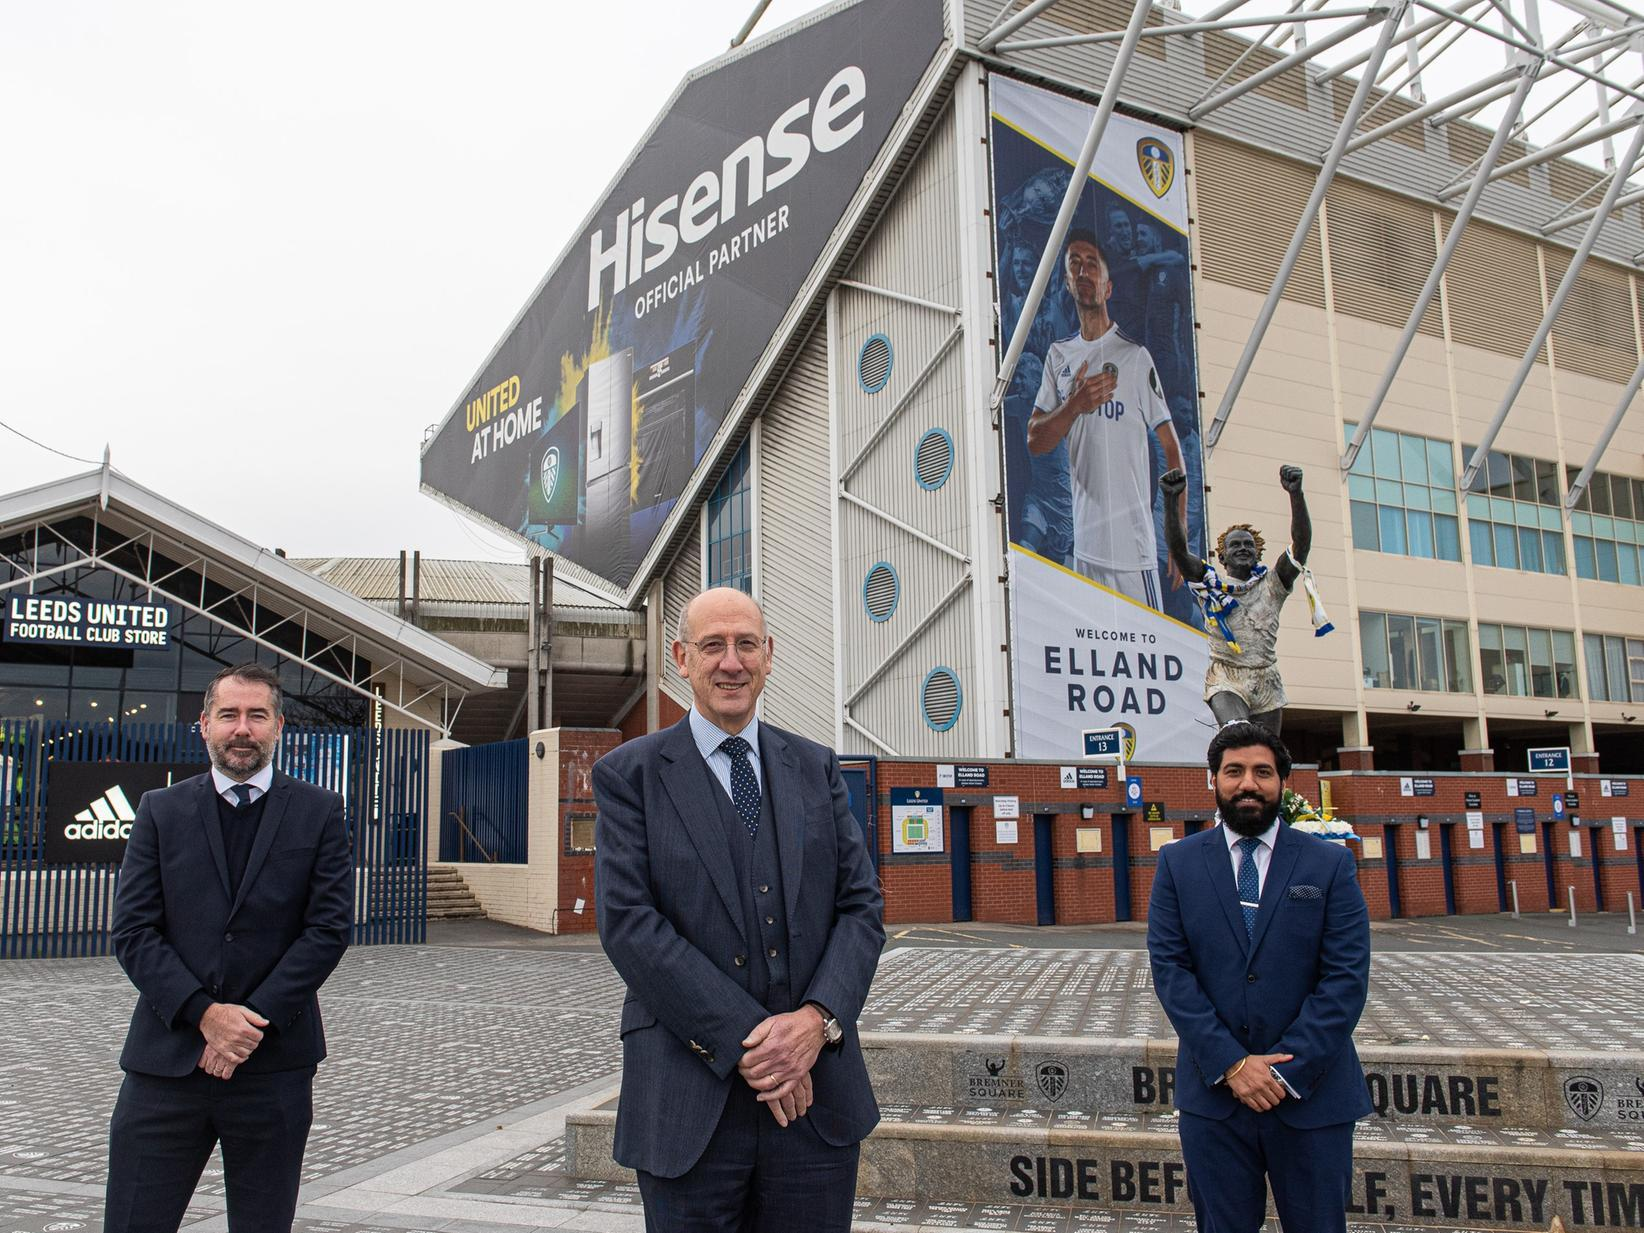 Leeds United unveil EURO 2020 sponsor Hisense as a new official partner